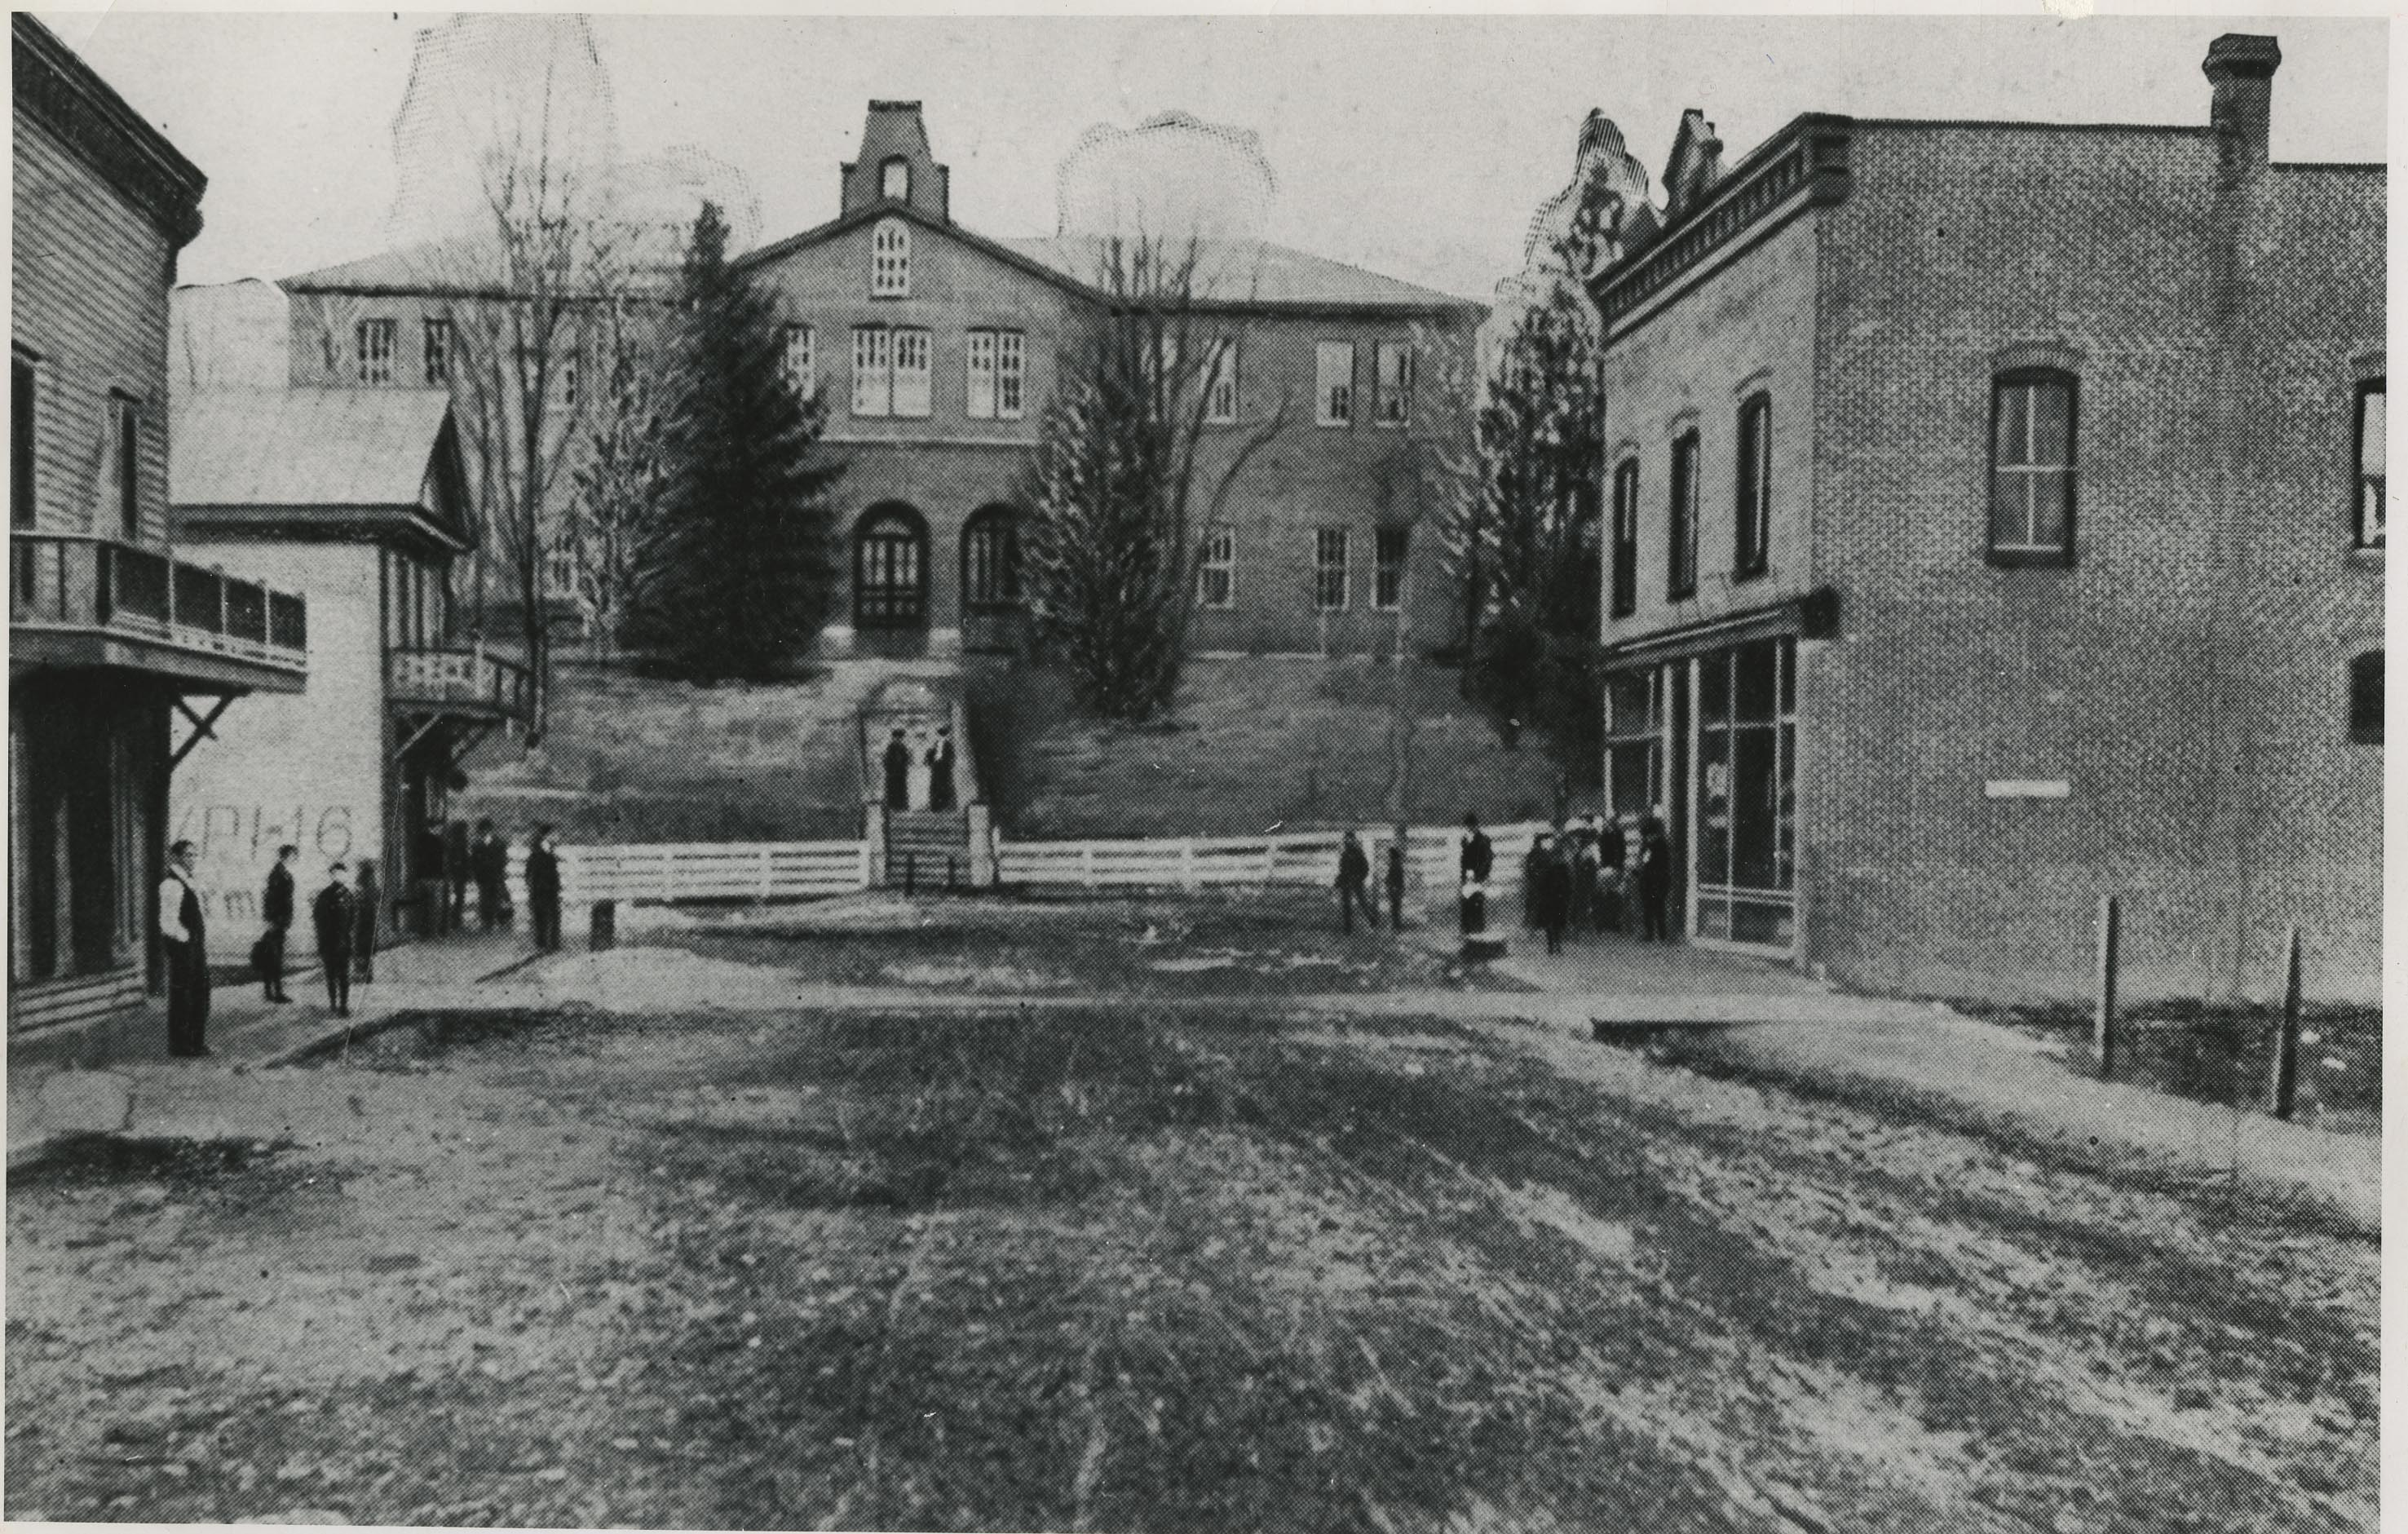 If you stood smack in the middle of Main St., right past the College Ave. intersection (think: right in front of Moe's--please don't try it!) and looked up hill, this is what you'd see in 1900. No Main St. or Alumni Mall entrance to campus. The building, which had been the original Preston and Olin Institute, was then being used as the machine shop.